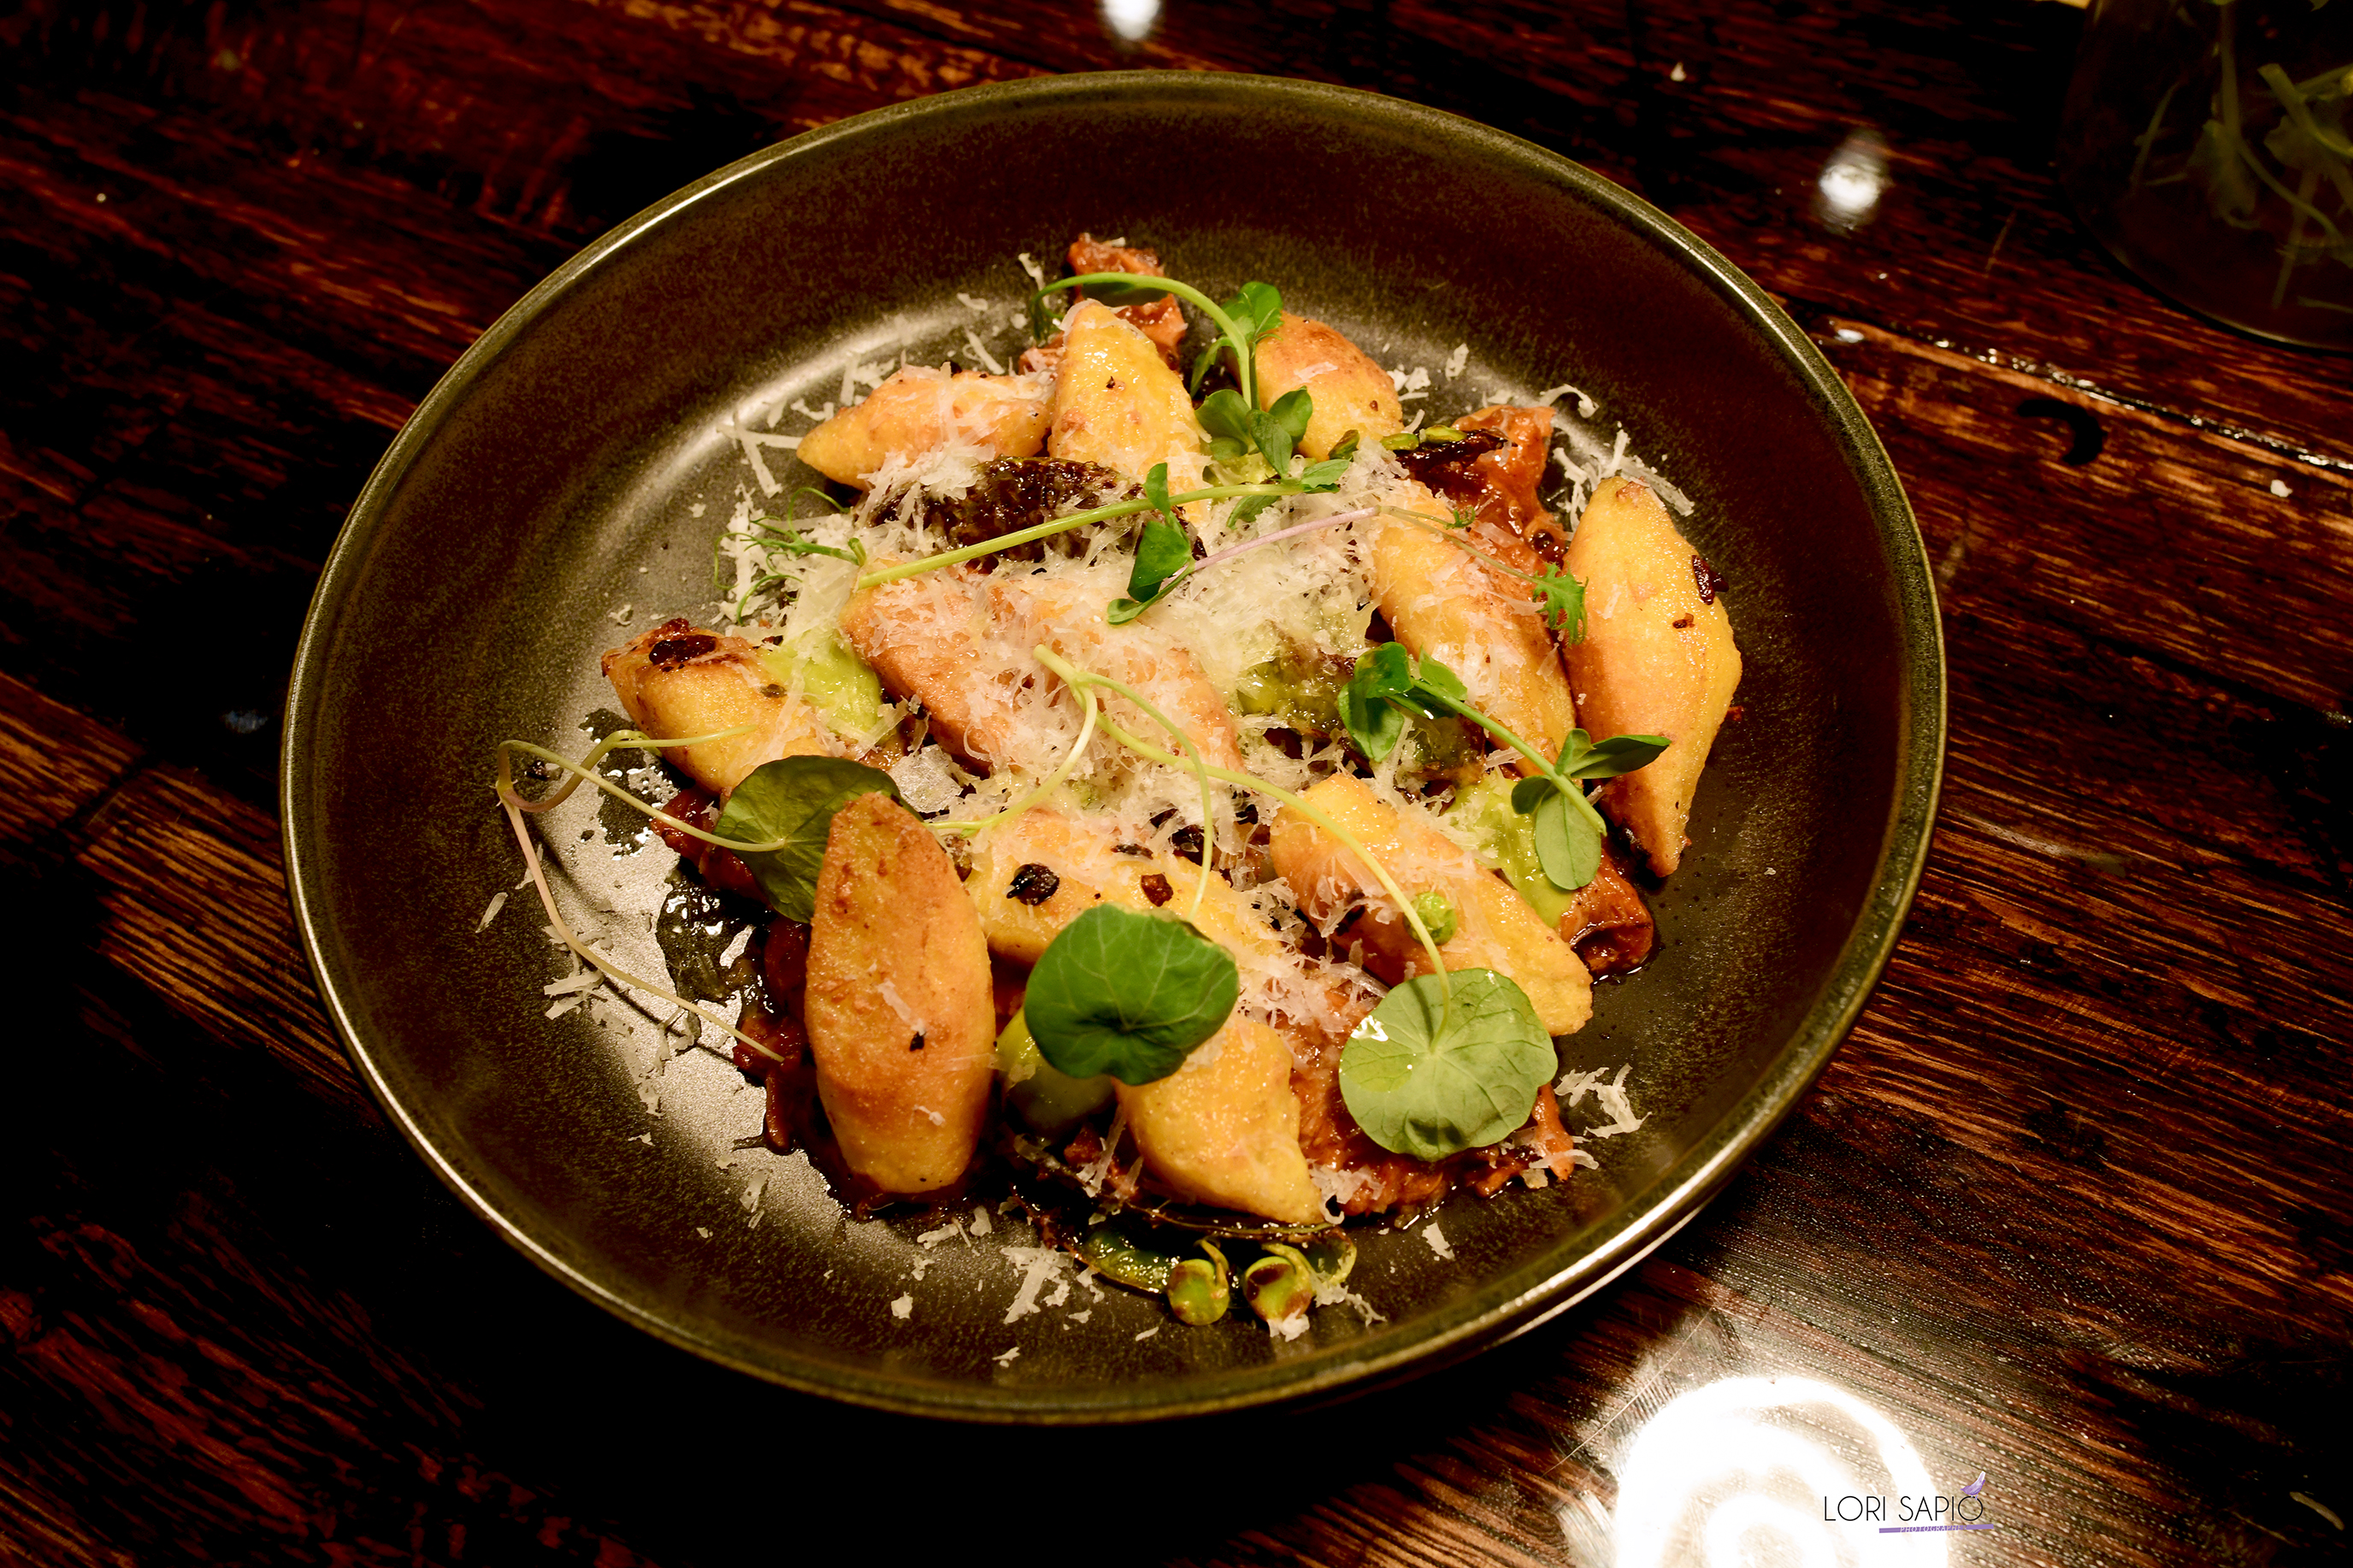 Yucca Gnocchi and Creative Latin American Options Debut Tonight in Wicker Park